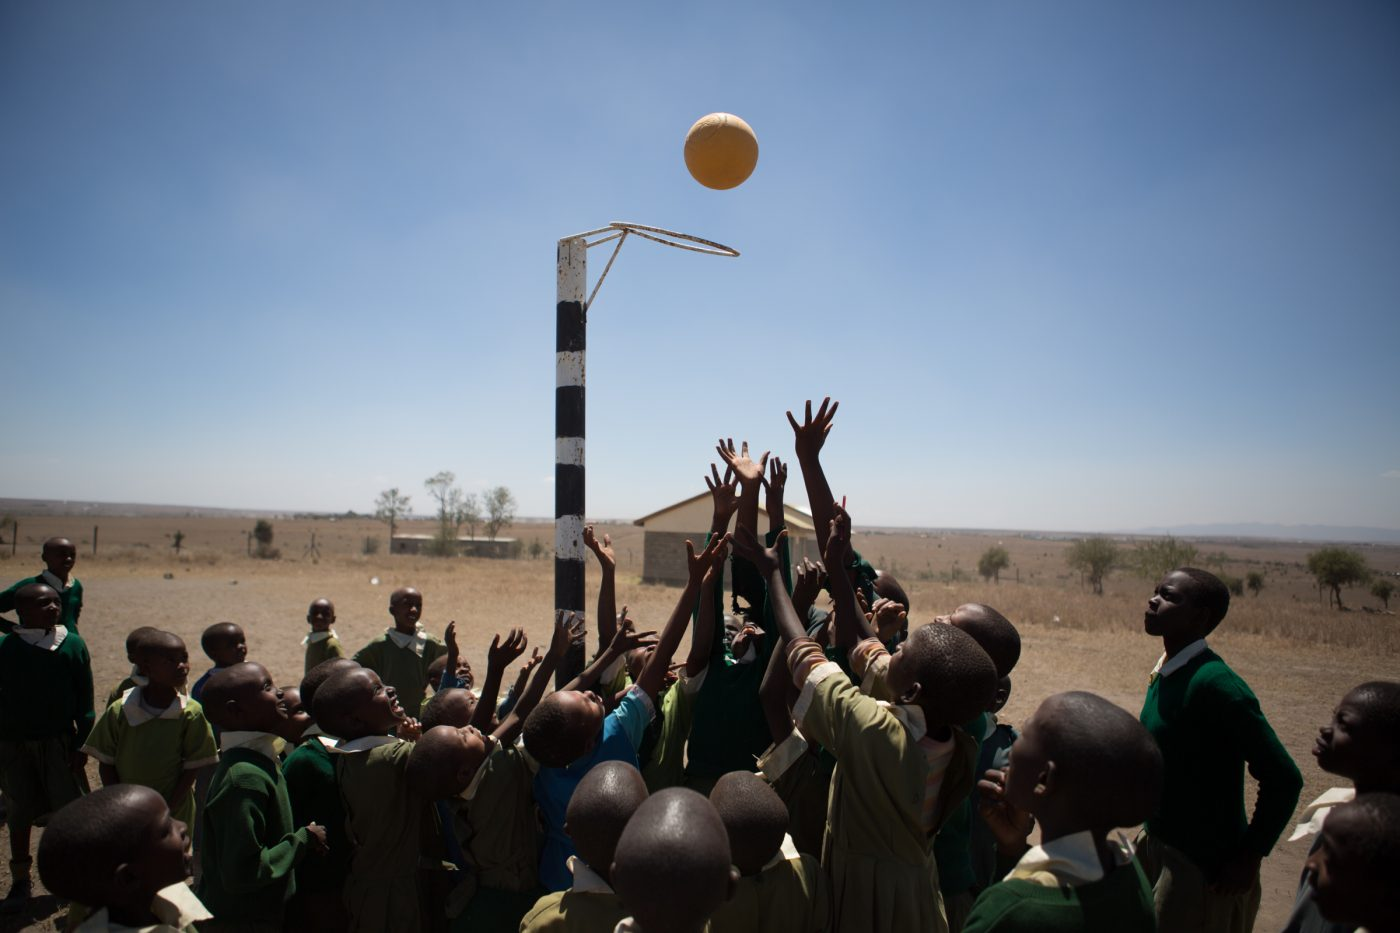 Ball Games Around the World | One World Play Project